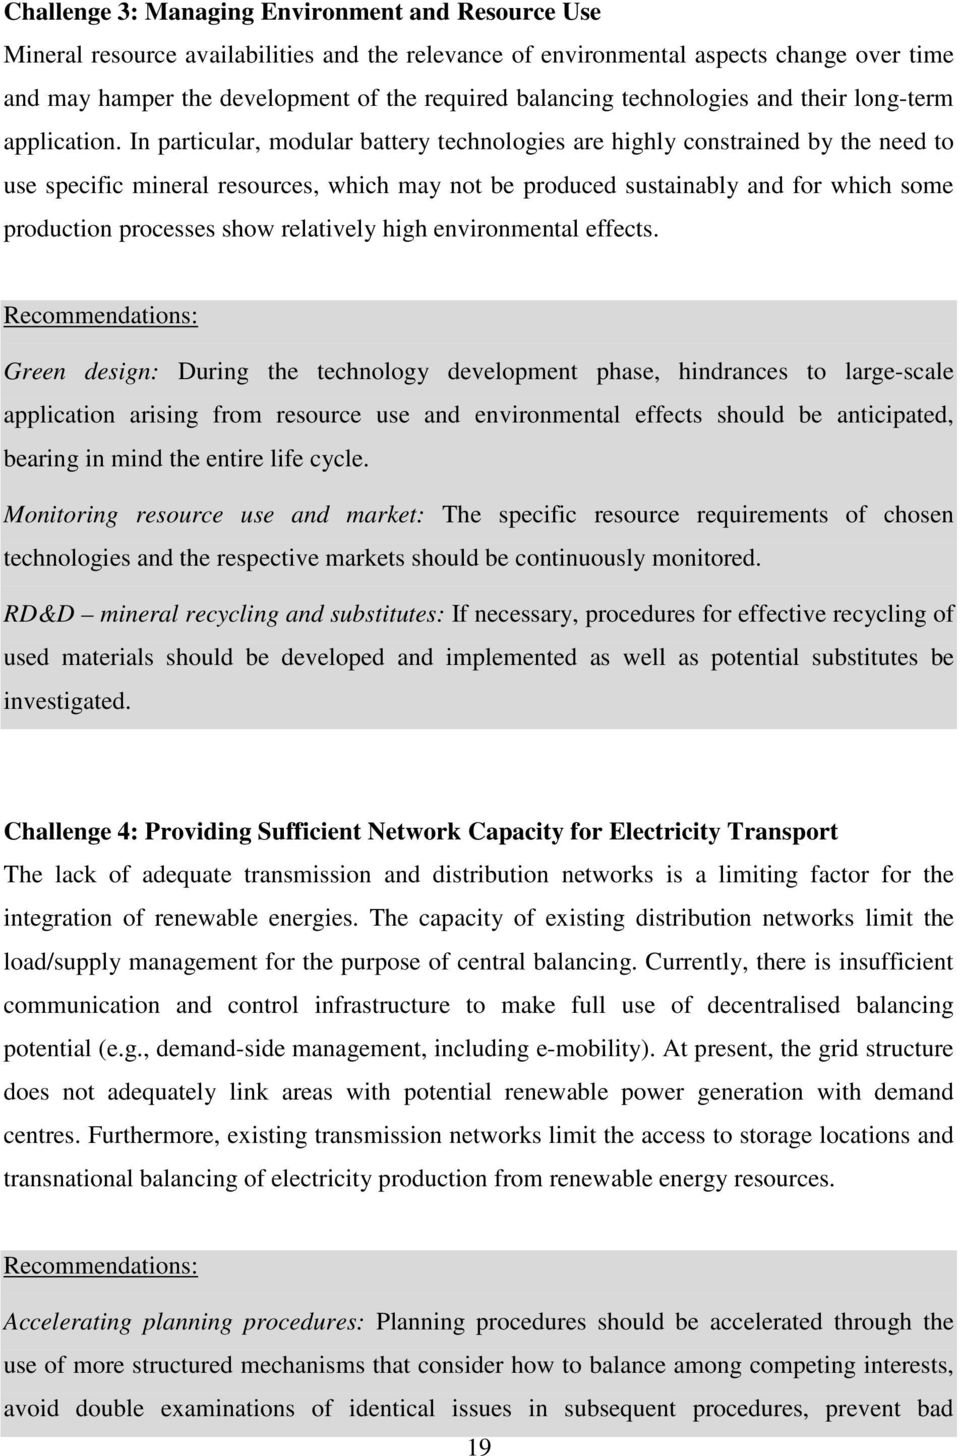 In particular, modular battery technologies are highly constrained by the need to use specific mineral resources, which may not be produced sustainably and for which some production processes show